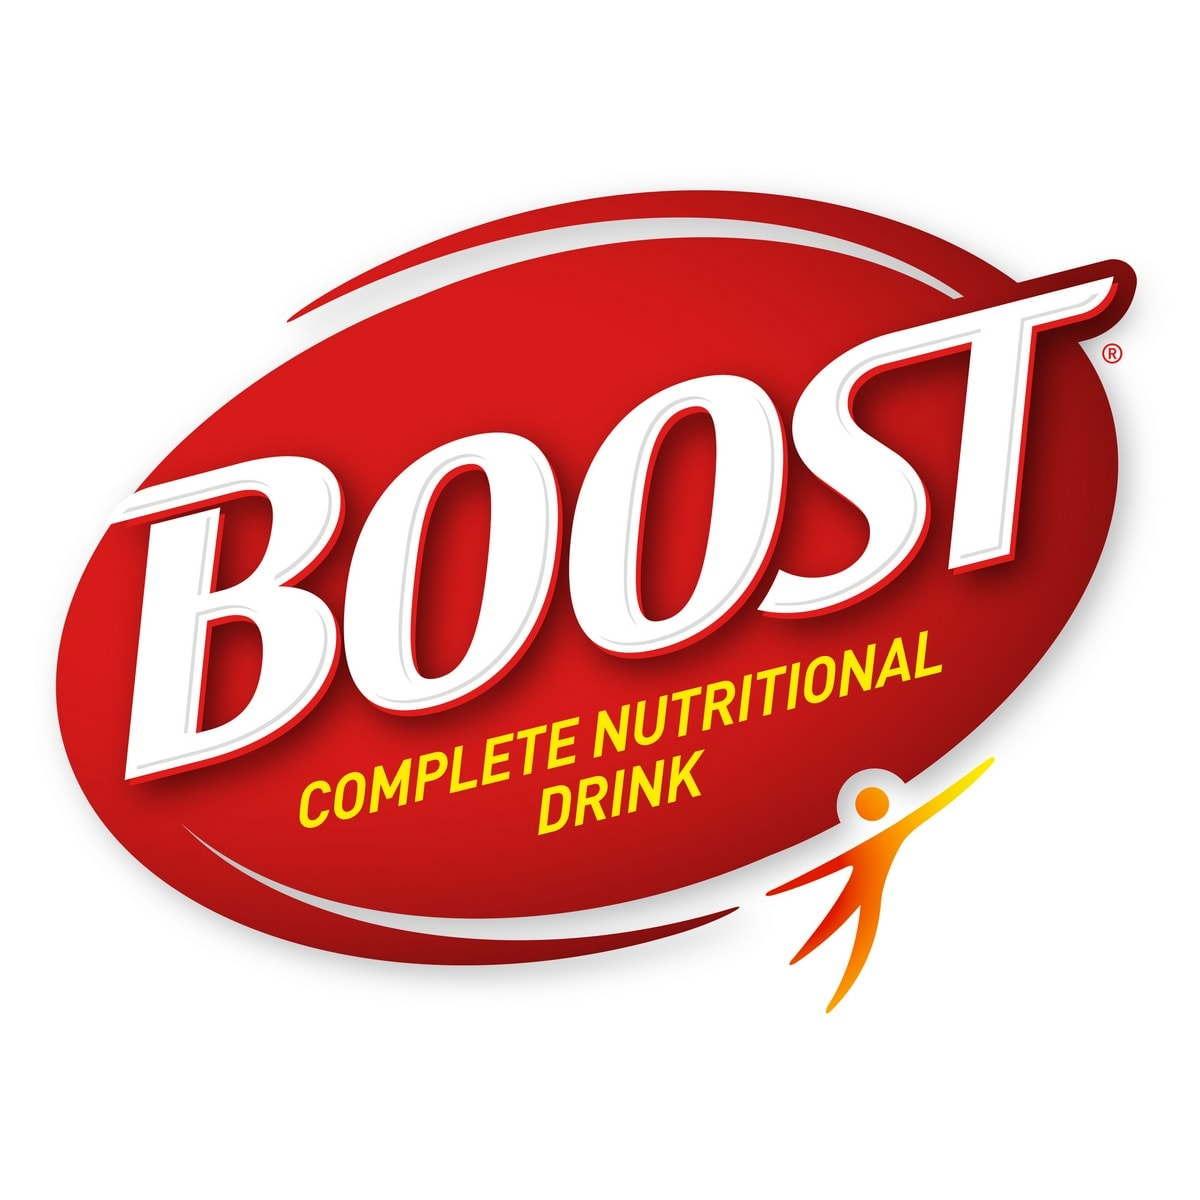 Marketing Mix Of Boost – Boost Marketing Mix